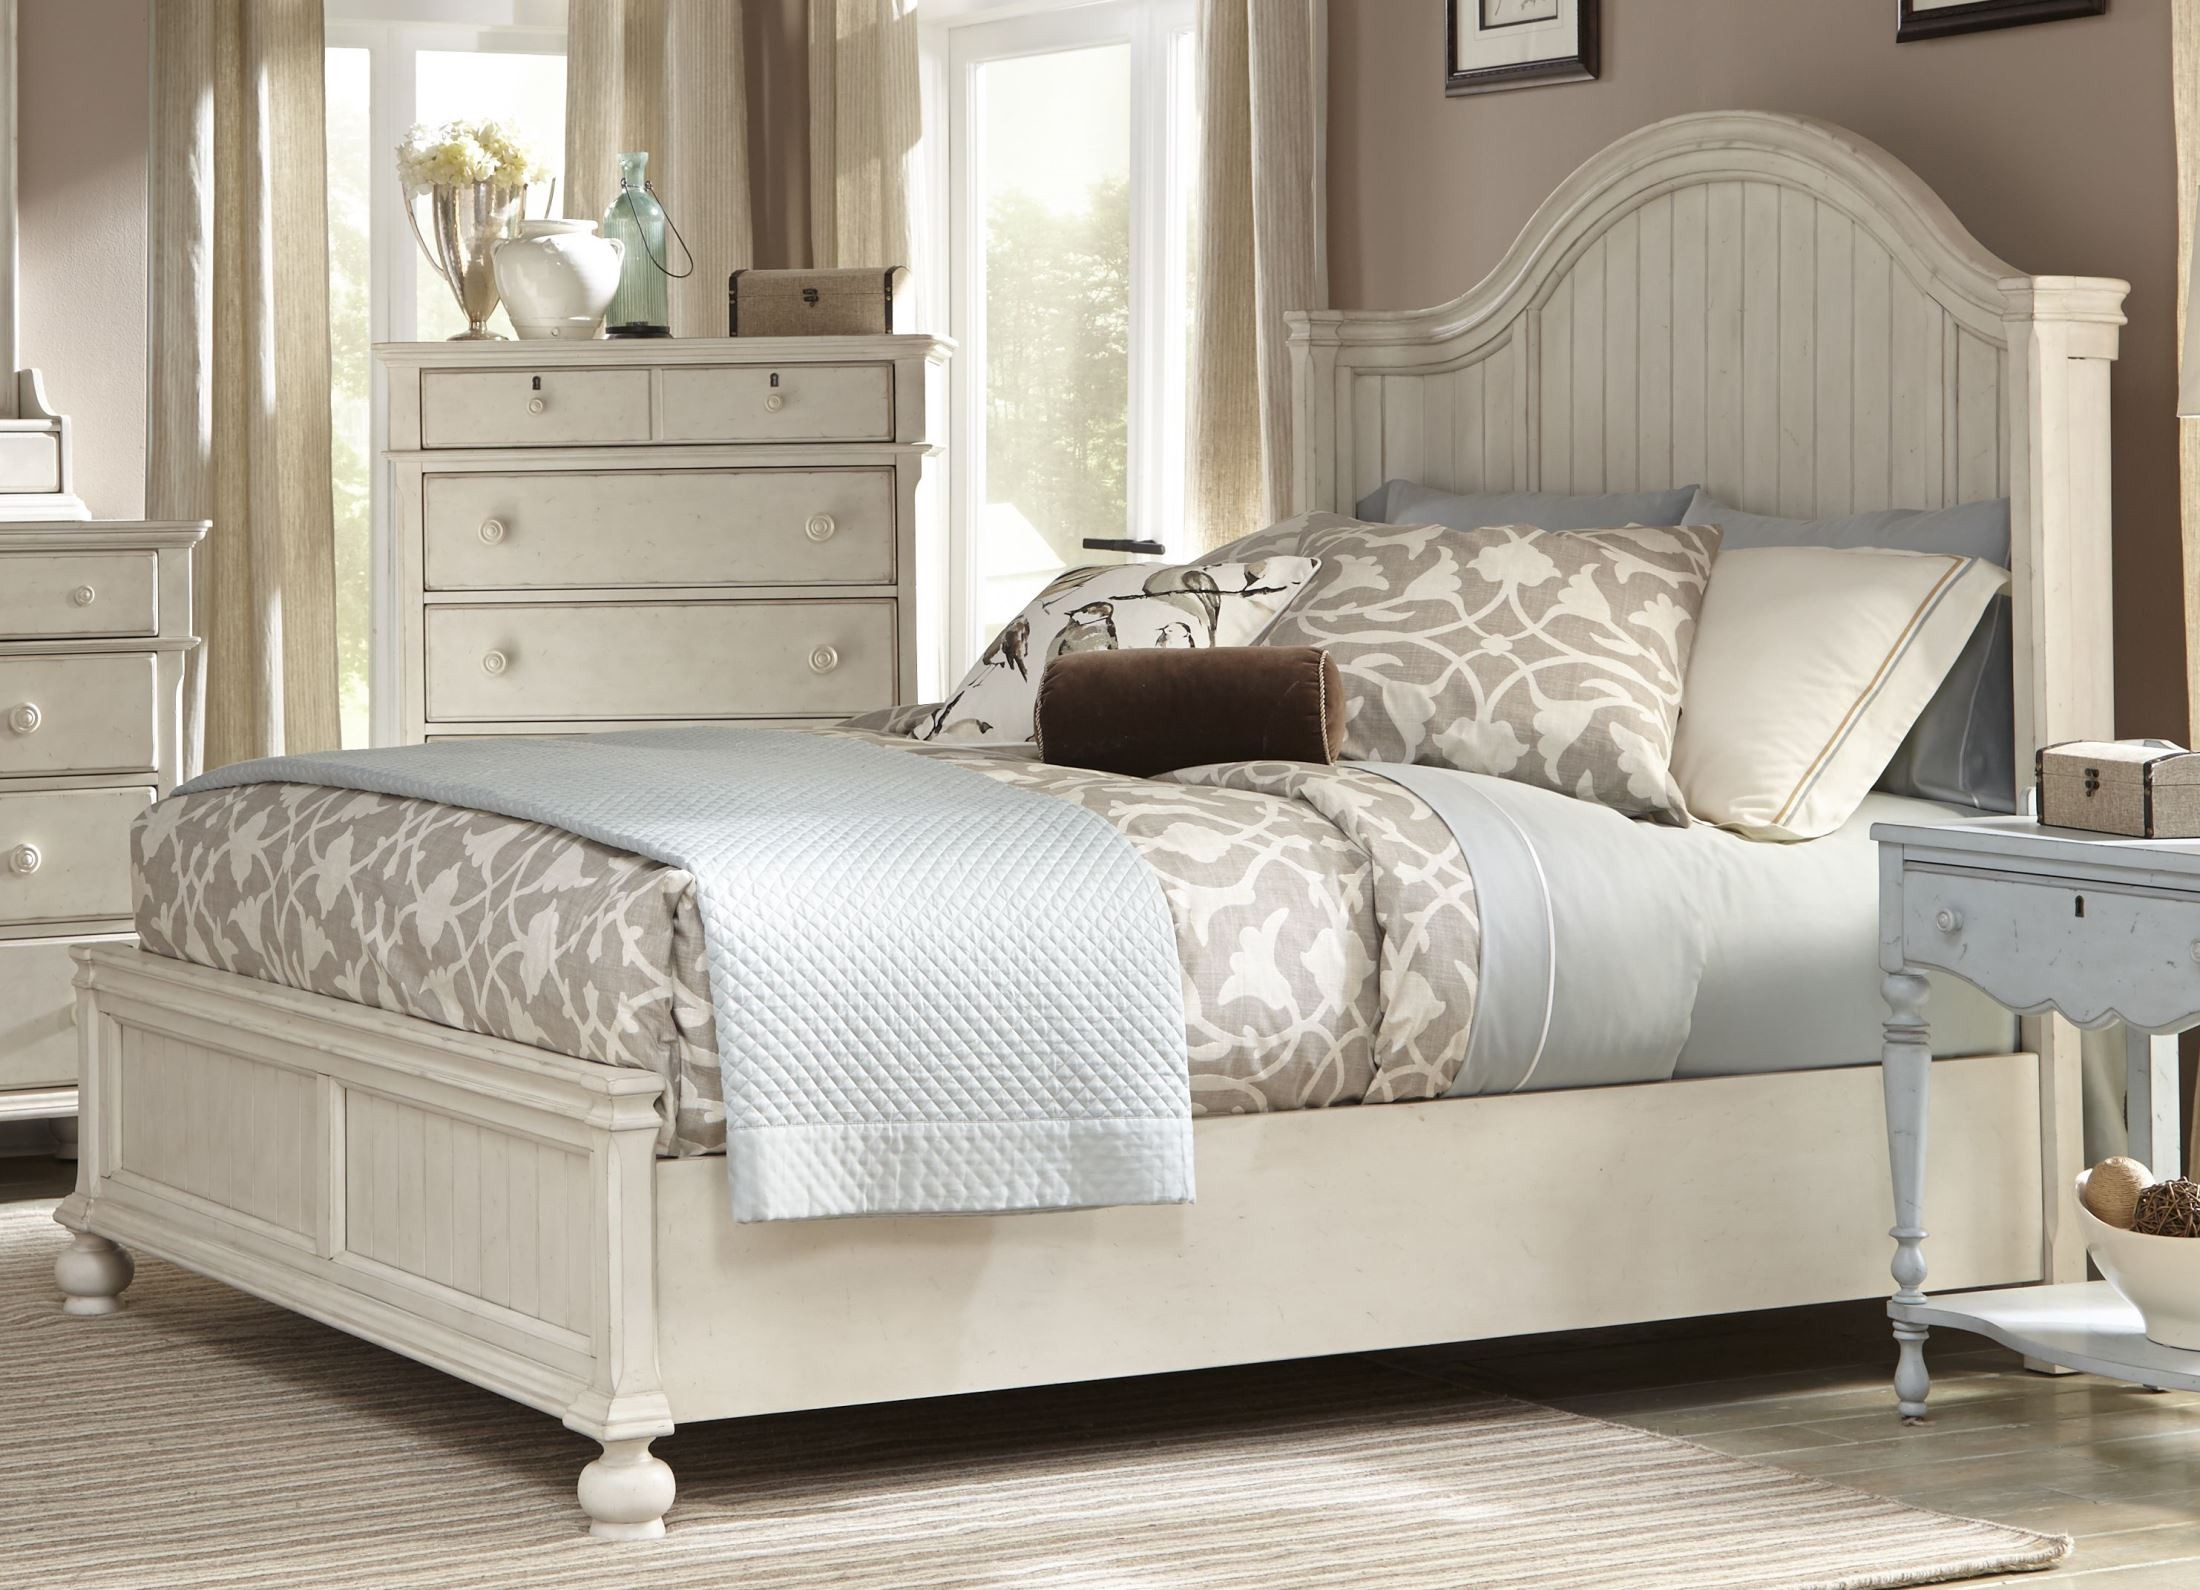 Newport antique white king panel bed from american for American furniture catalog 2015